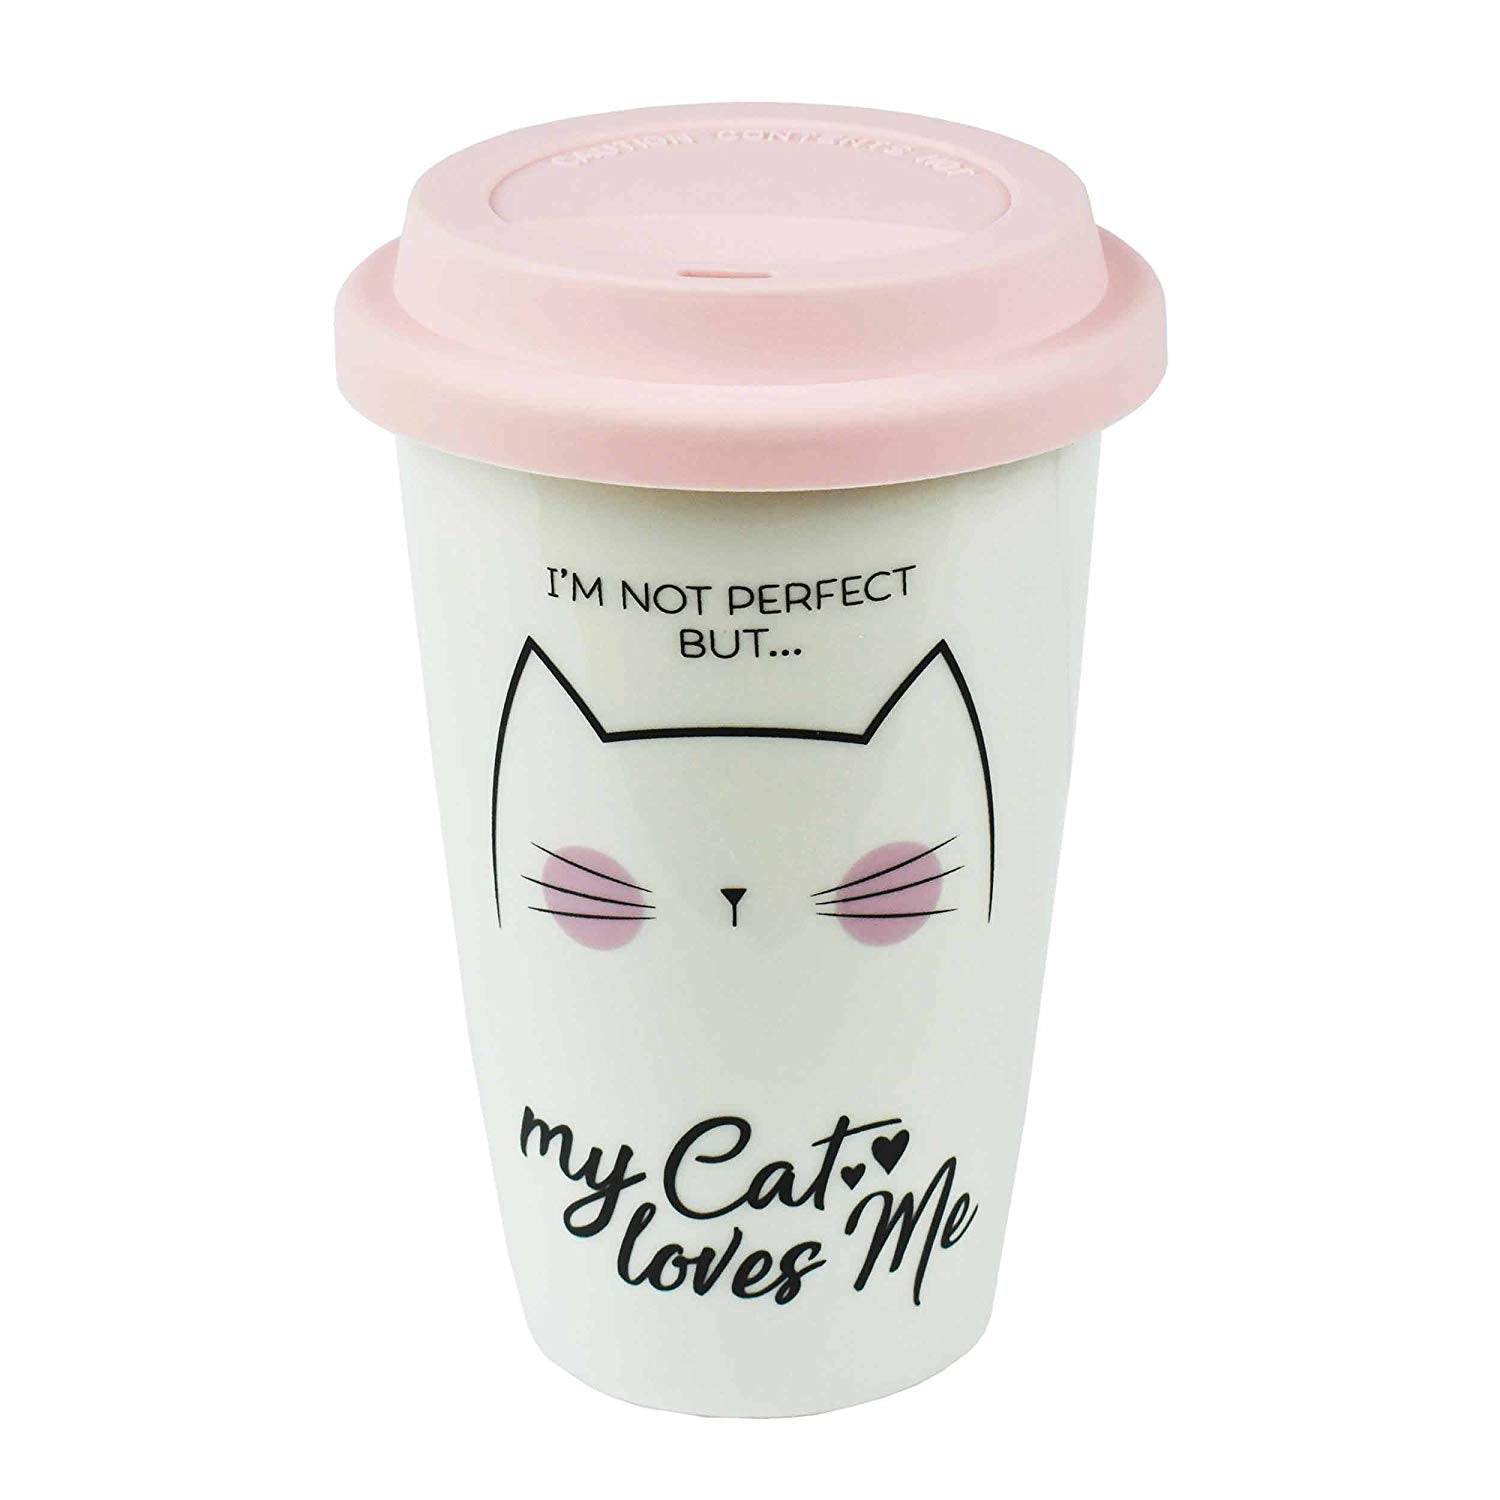 I May Not be Perfect But My Cat Loves Me Travel Mug